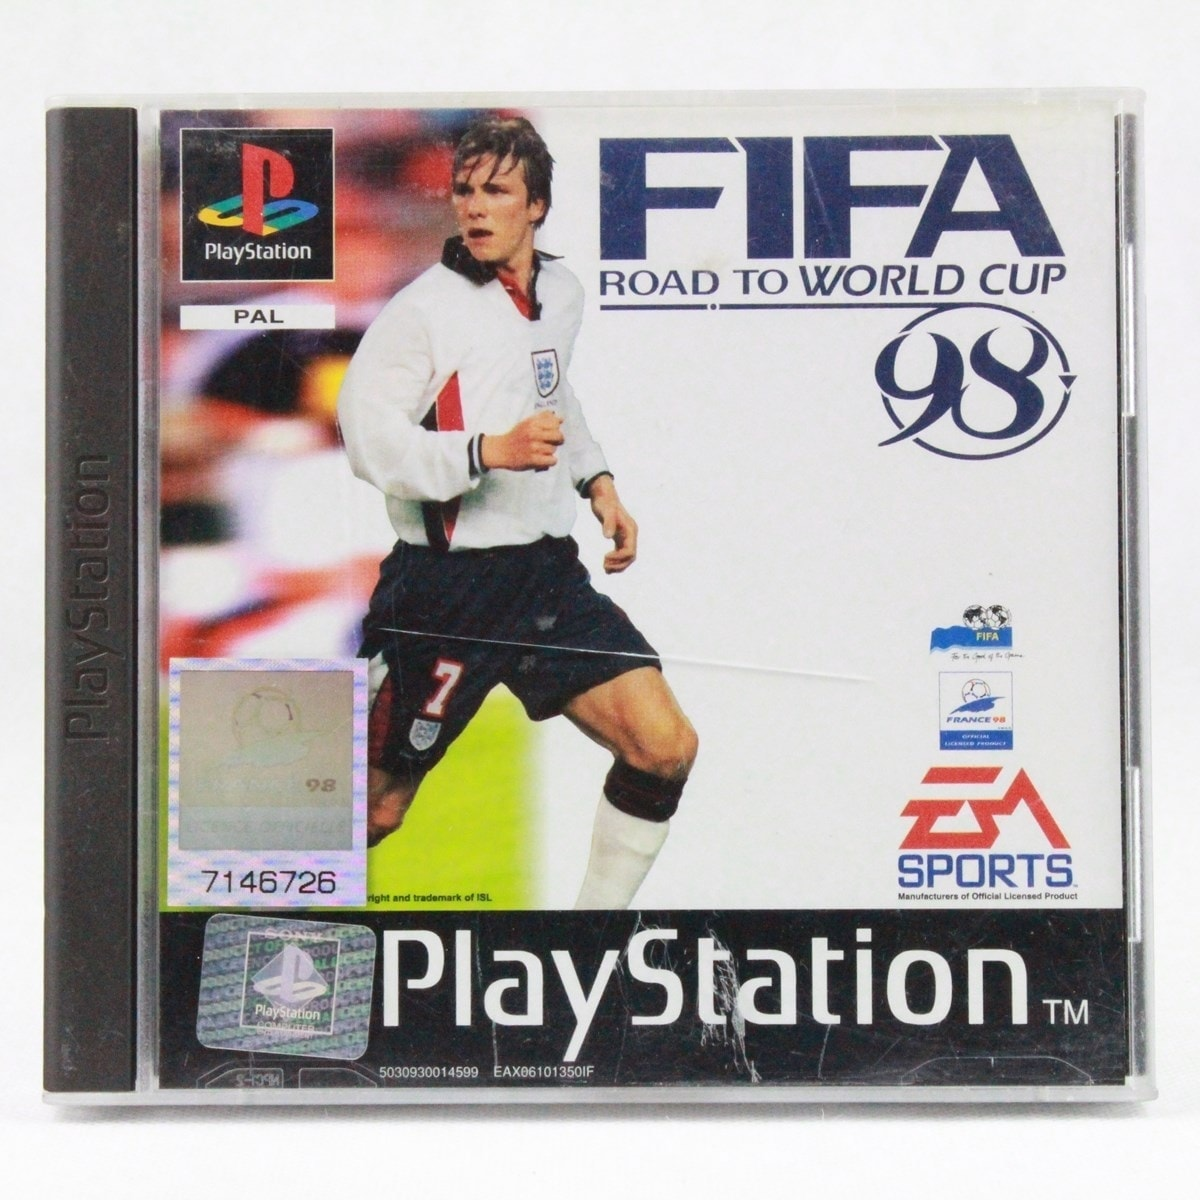 FIFA: Road to World Cup 98 (PS1)